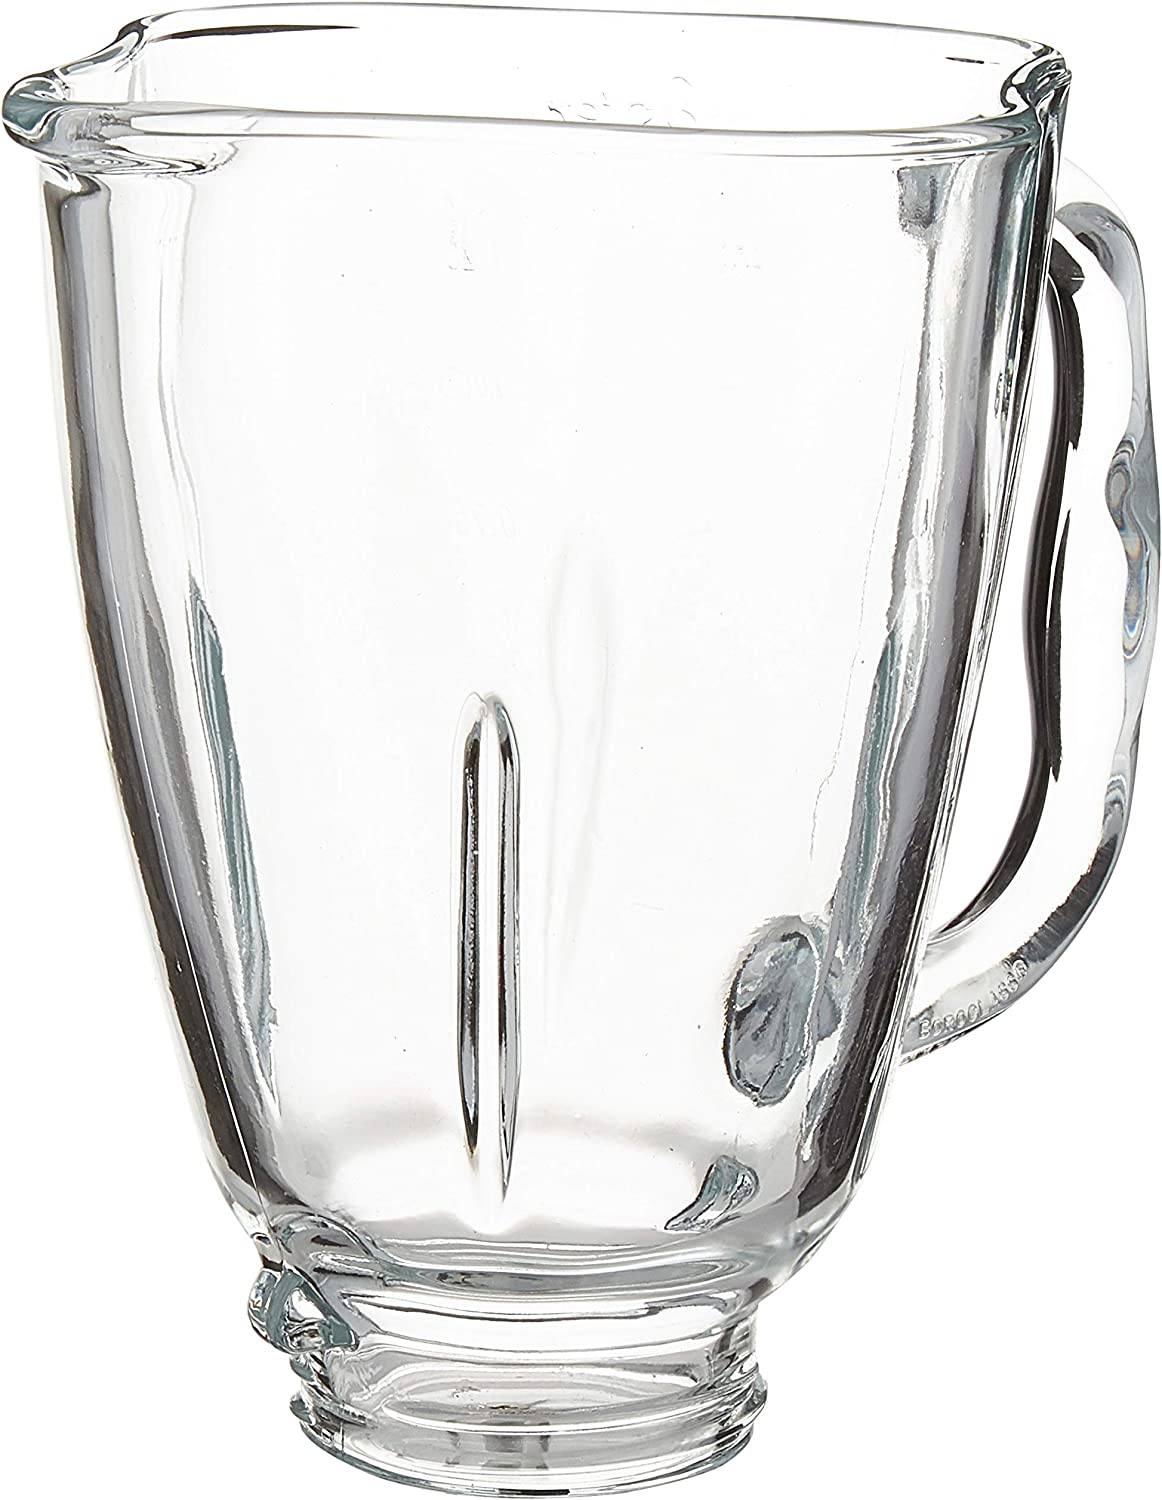 Oster Clover Top Glass Blender Jar, 5-Cup, Clear